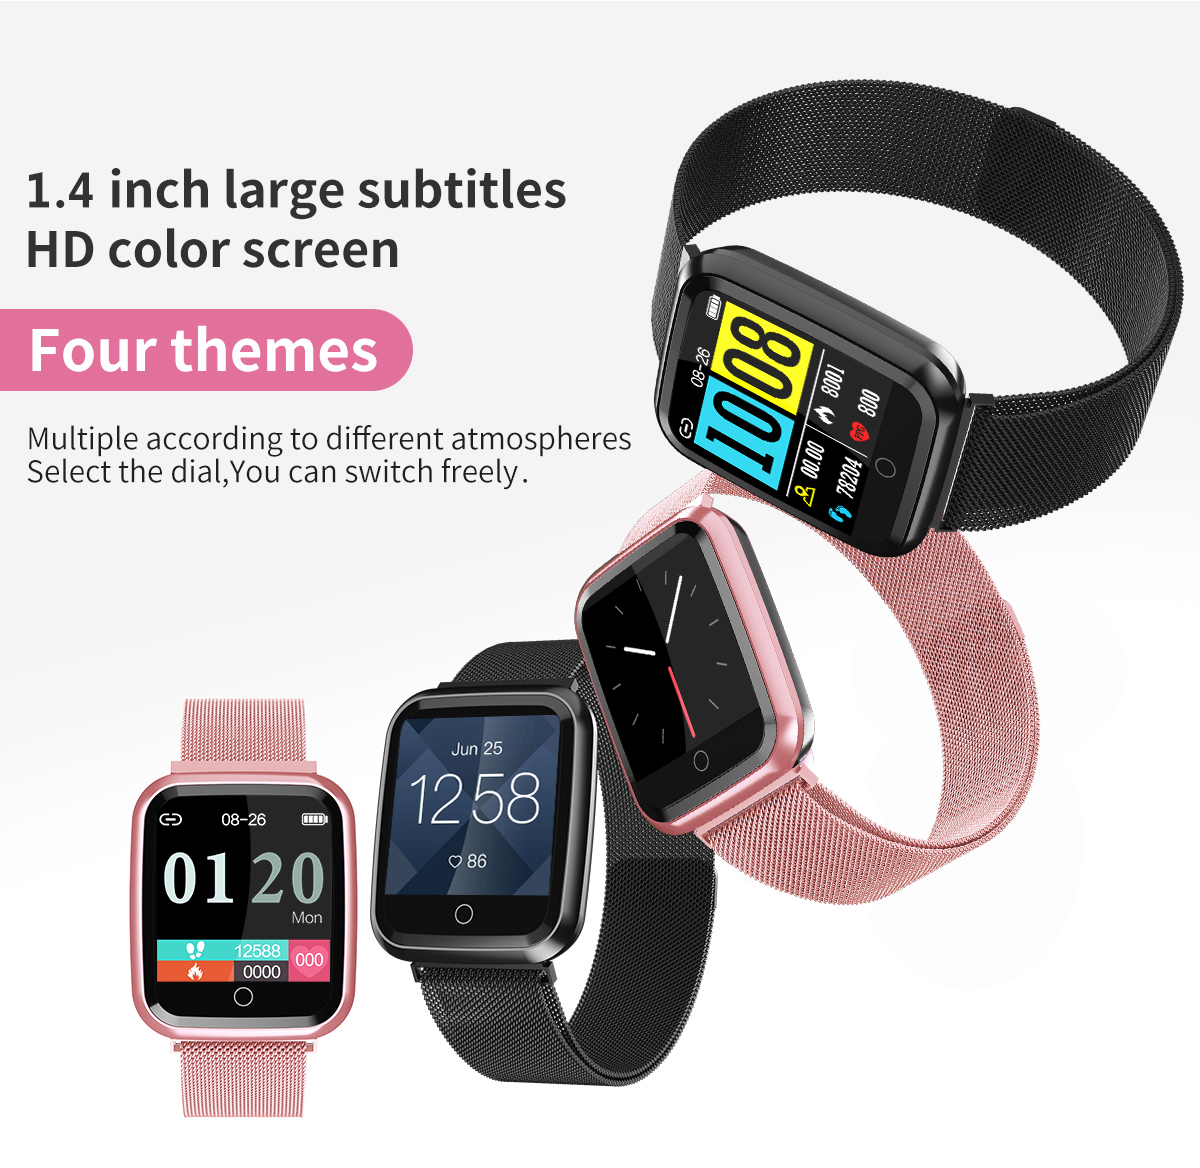 DAROBO N99 Sport and Heart rate monitor Smart watch with Waterproof Blood pressure monitor for men women available in Android IOS 9